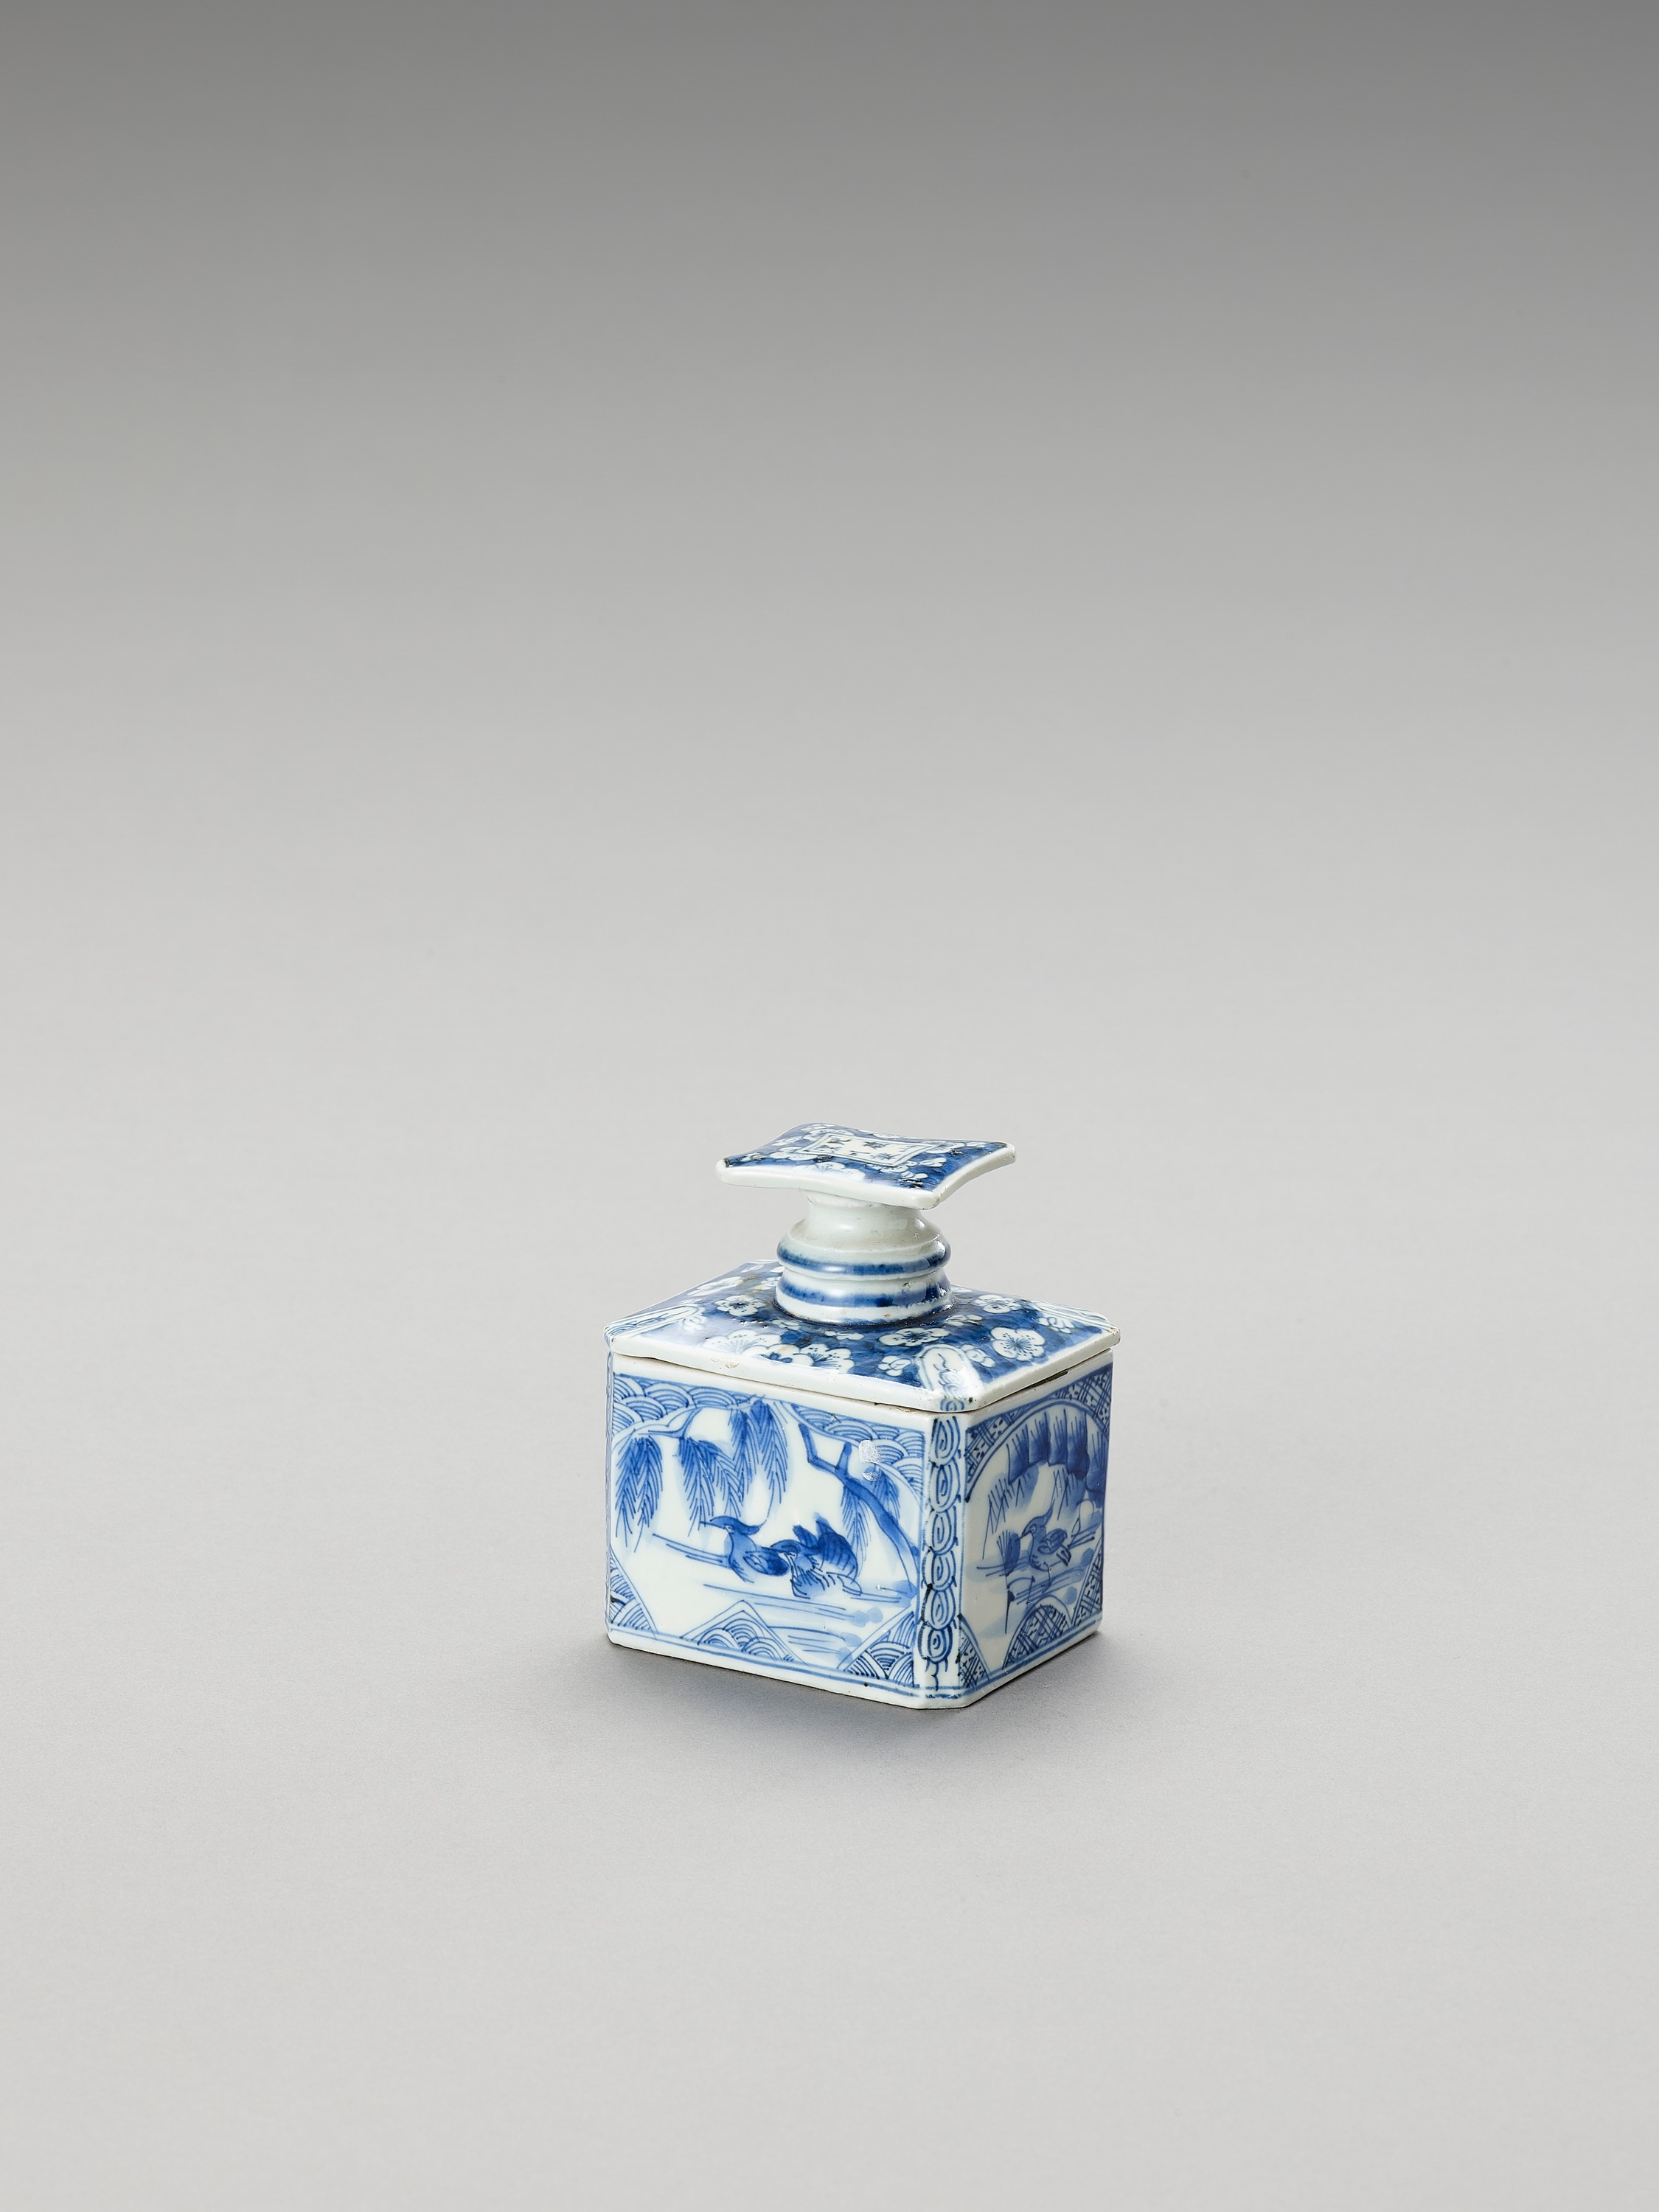 A BLUE AND WHITE FUKAGAWA PORCELAIN TEA CADDY AND COVER - Image 4 of 7